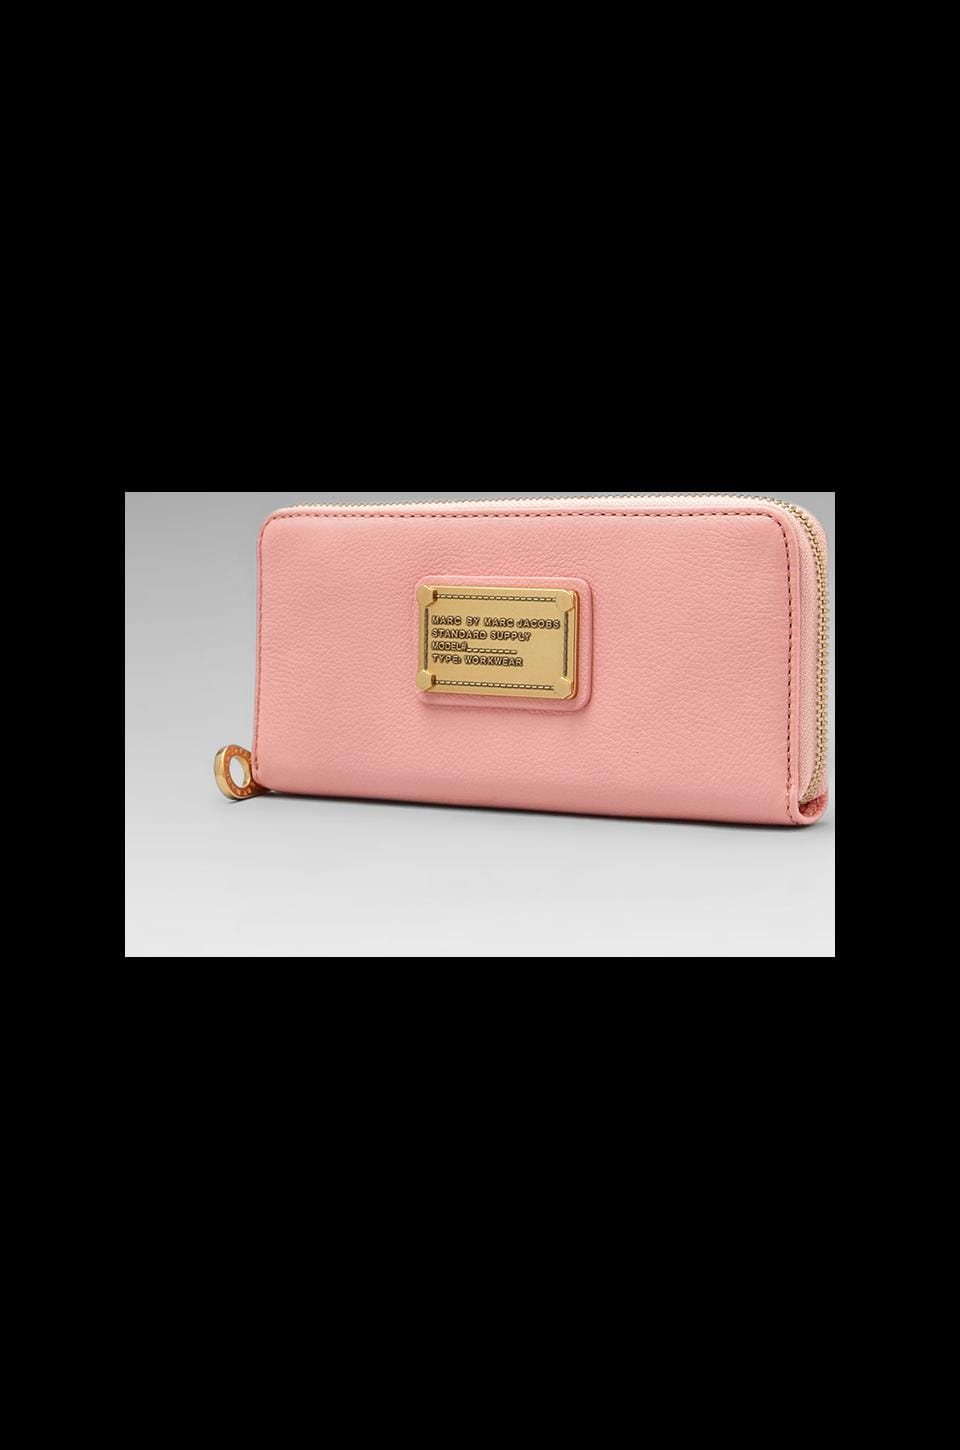 Marc by Marc Jacobs Classic Q Slim Zip Around in Apricot Rose